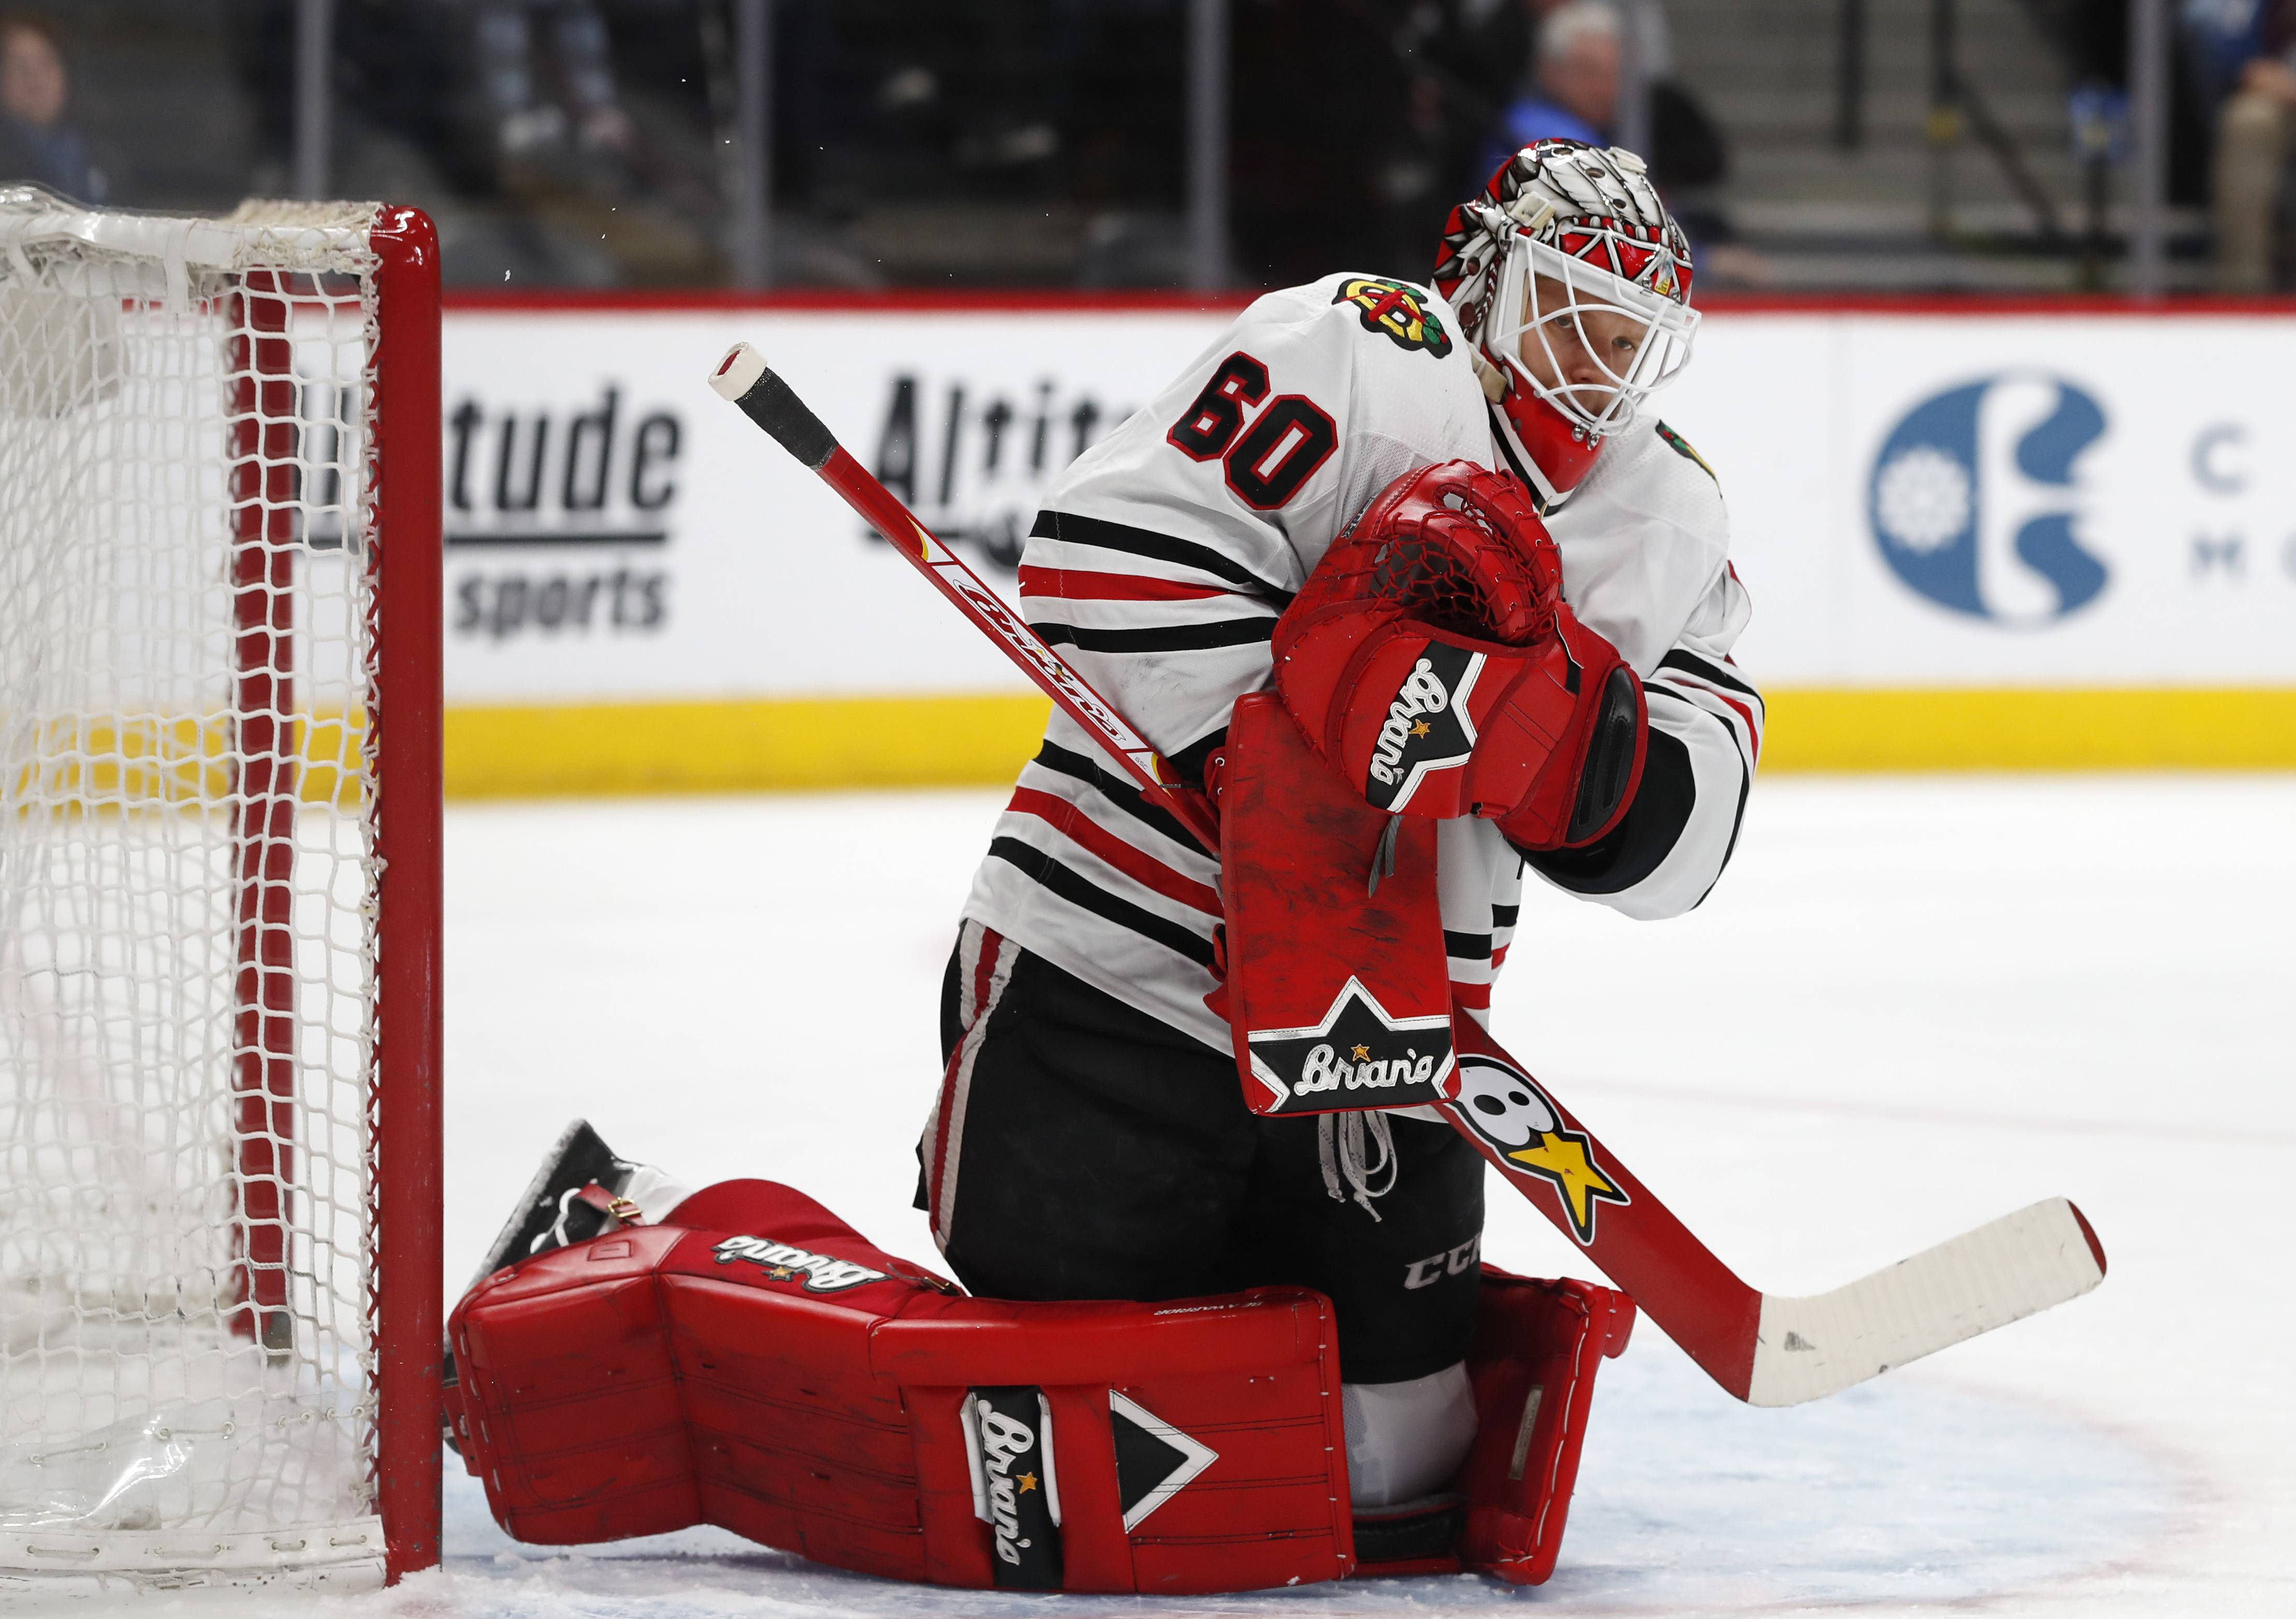 Chicago Blackhawks goaltender Collin Delia makes a save of a shot off the stick of a Colorado Avalanche player in the first period of an NHL hockey game Friday, March 30, 2018, in Denver.